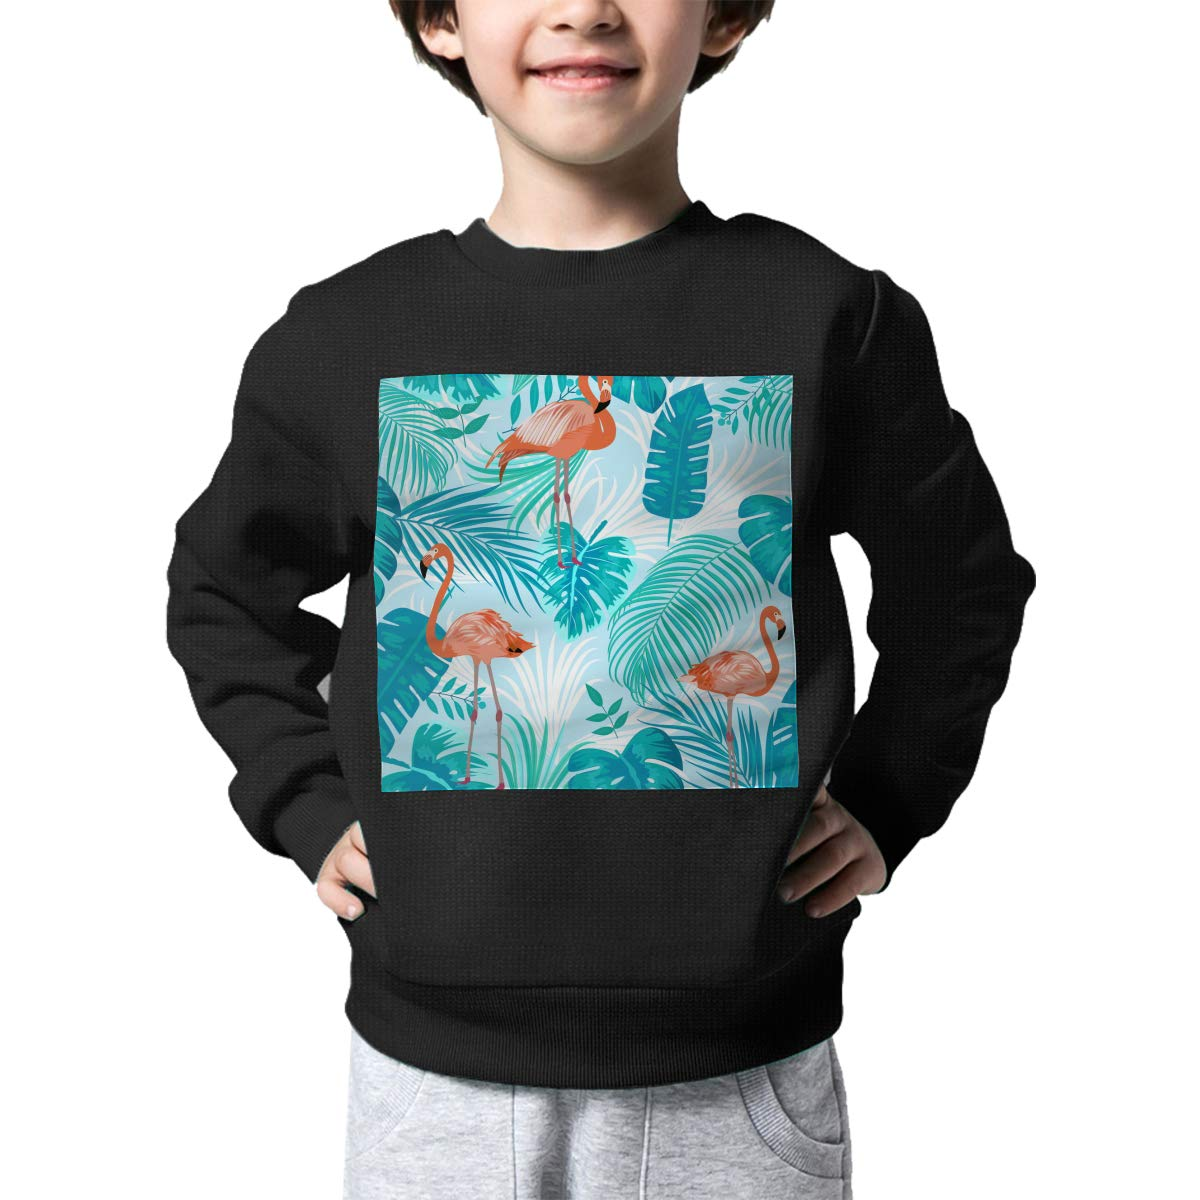 Flamingo and Tropical Leaves1 Pattern Printed Toddler Childrens Crew Neck Sweater Long Sleeve Soft Knitted Sweater Jumper